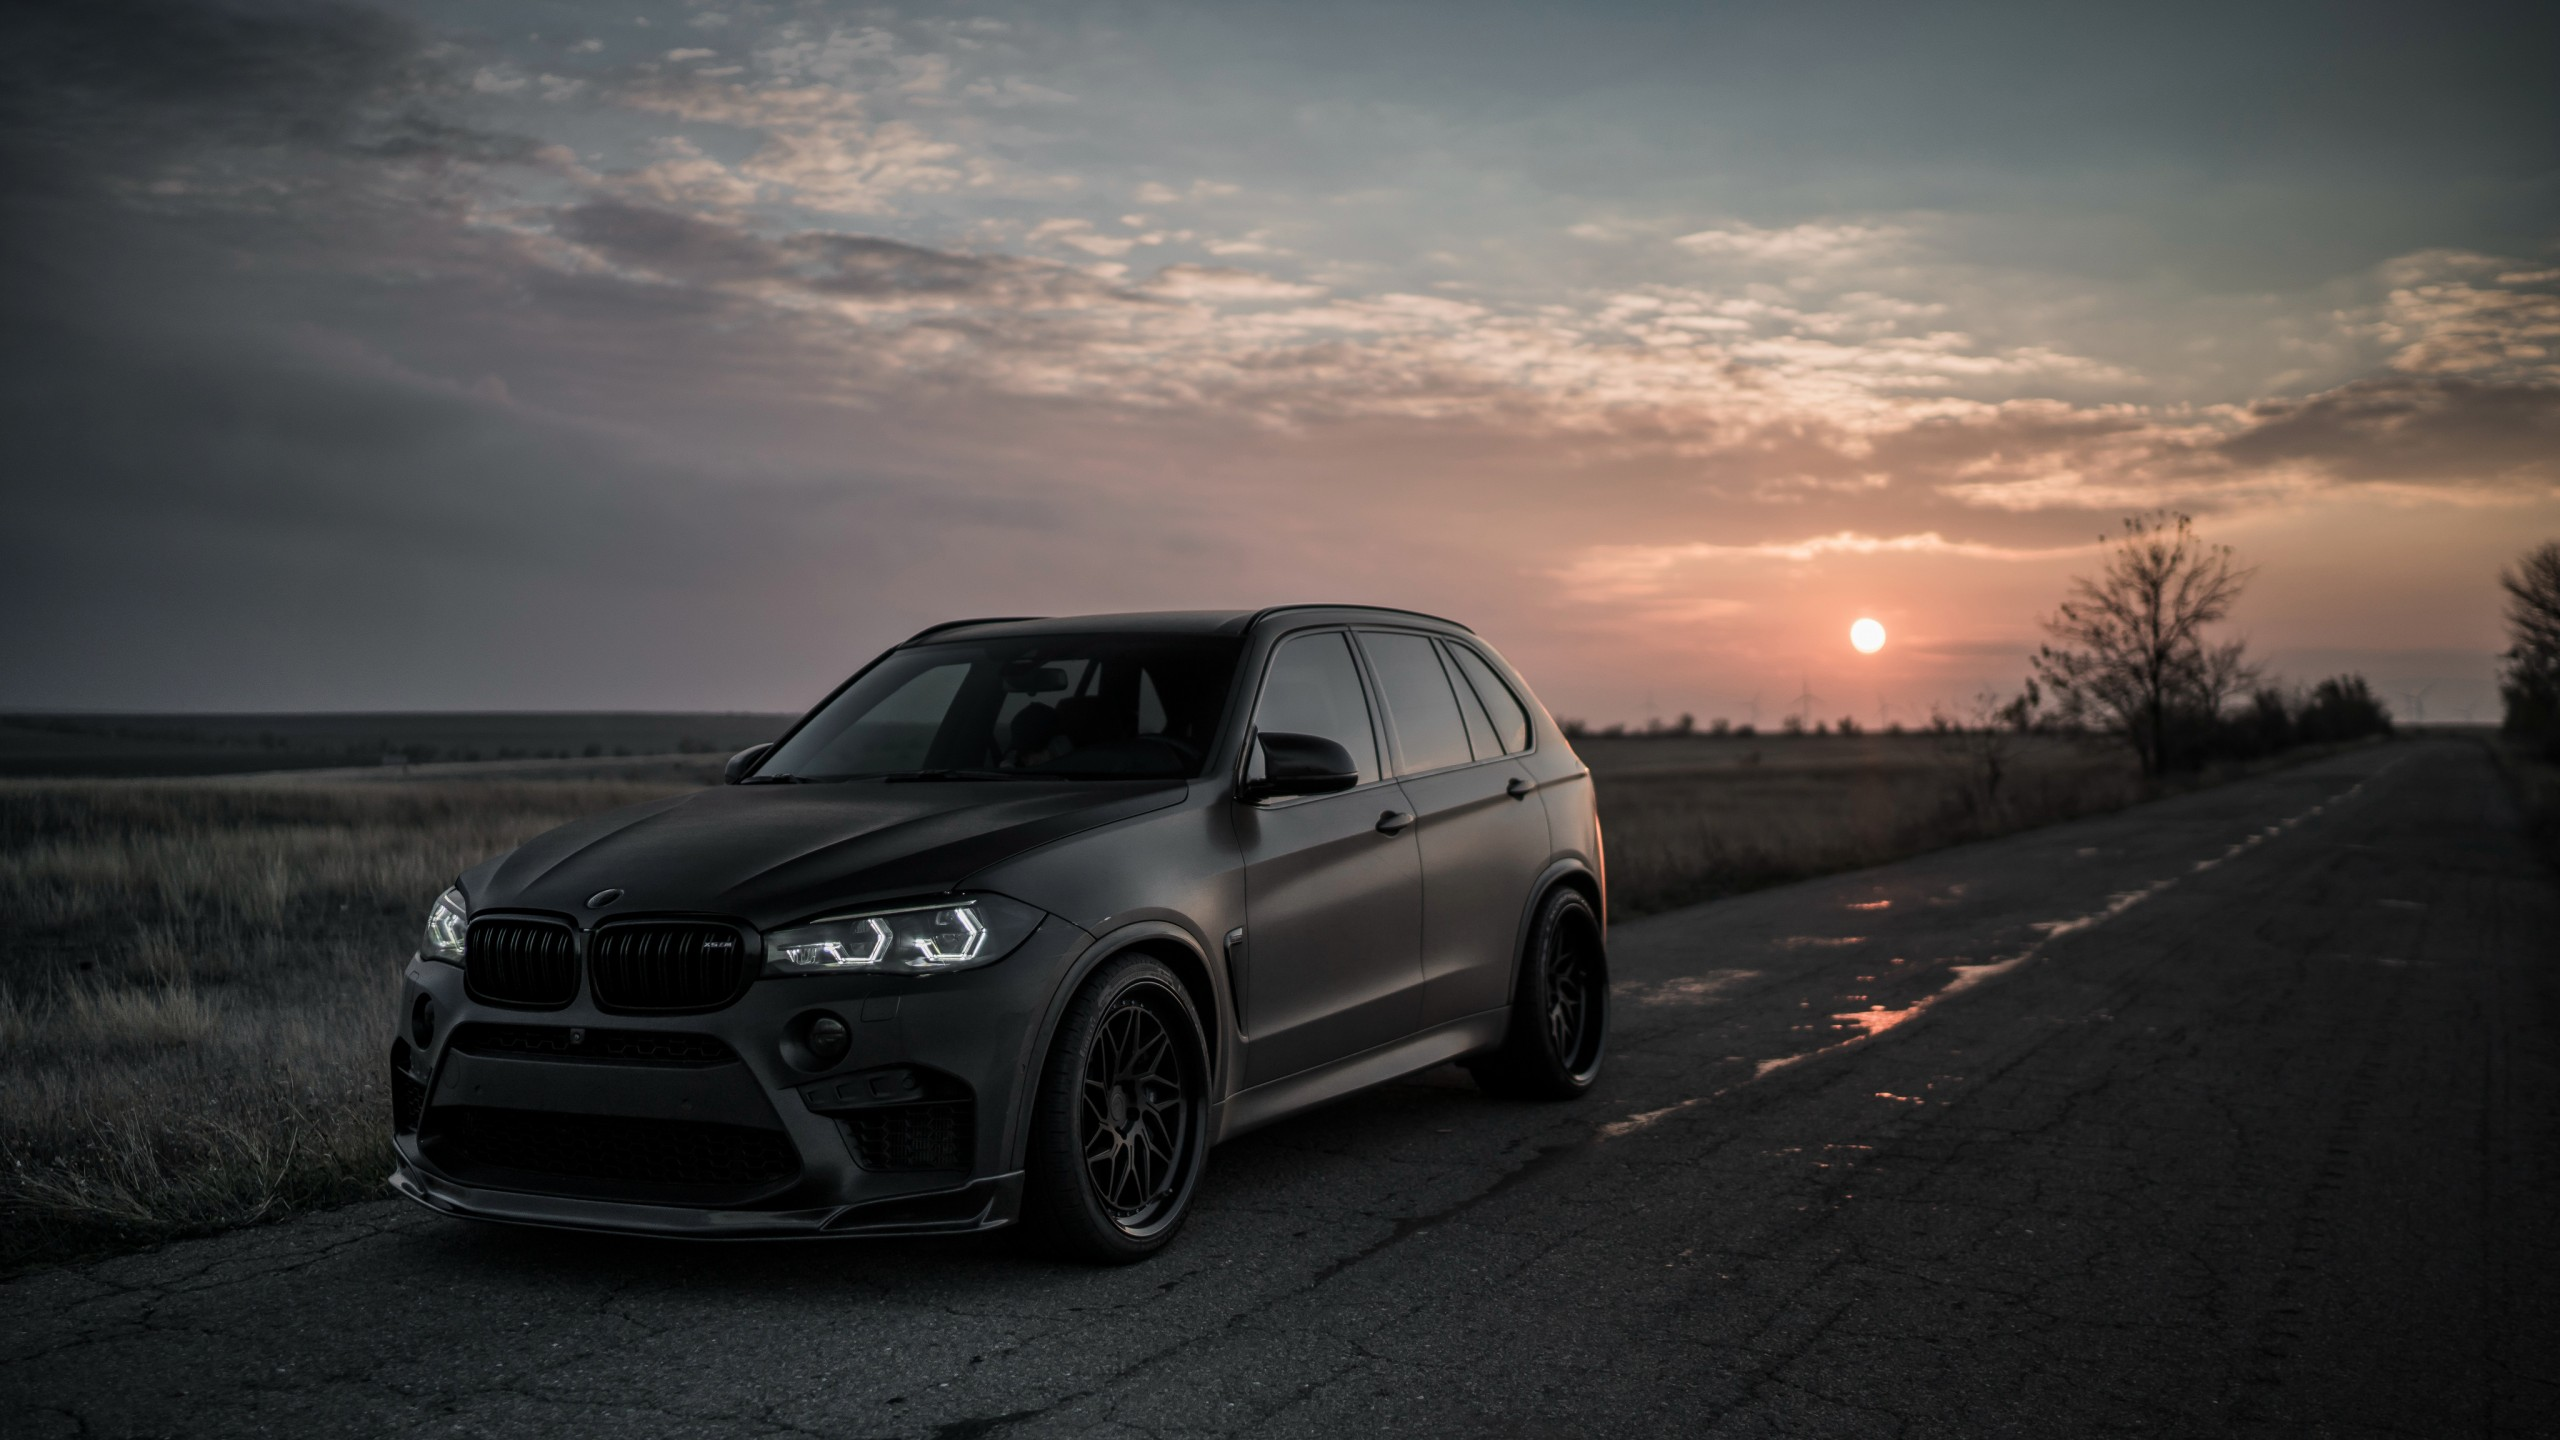 2018 z performance bmw x5 m 4k wallpaper | hd car wallpapers | id #9548